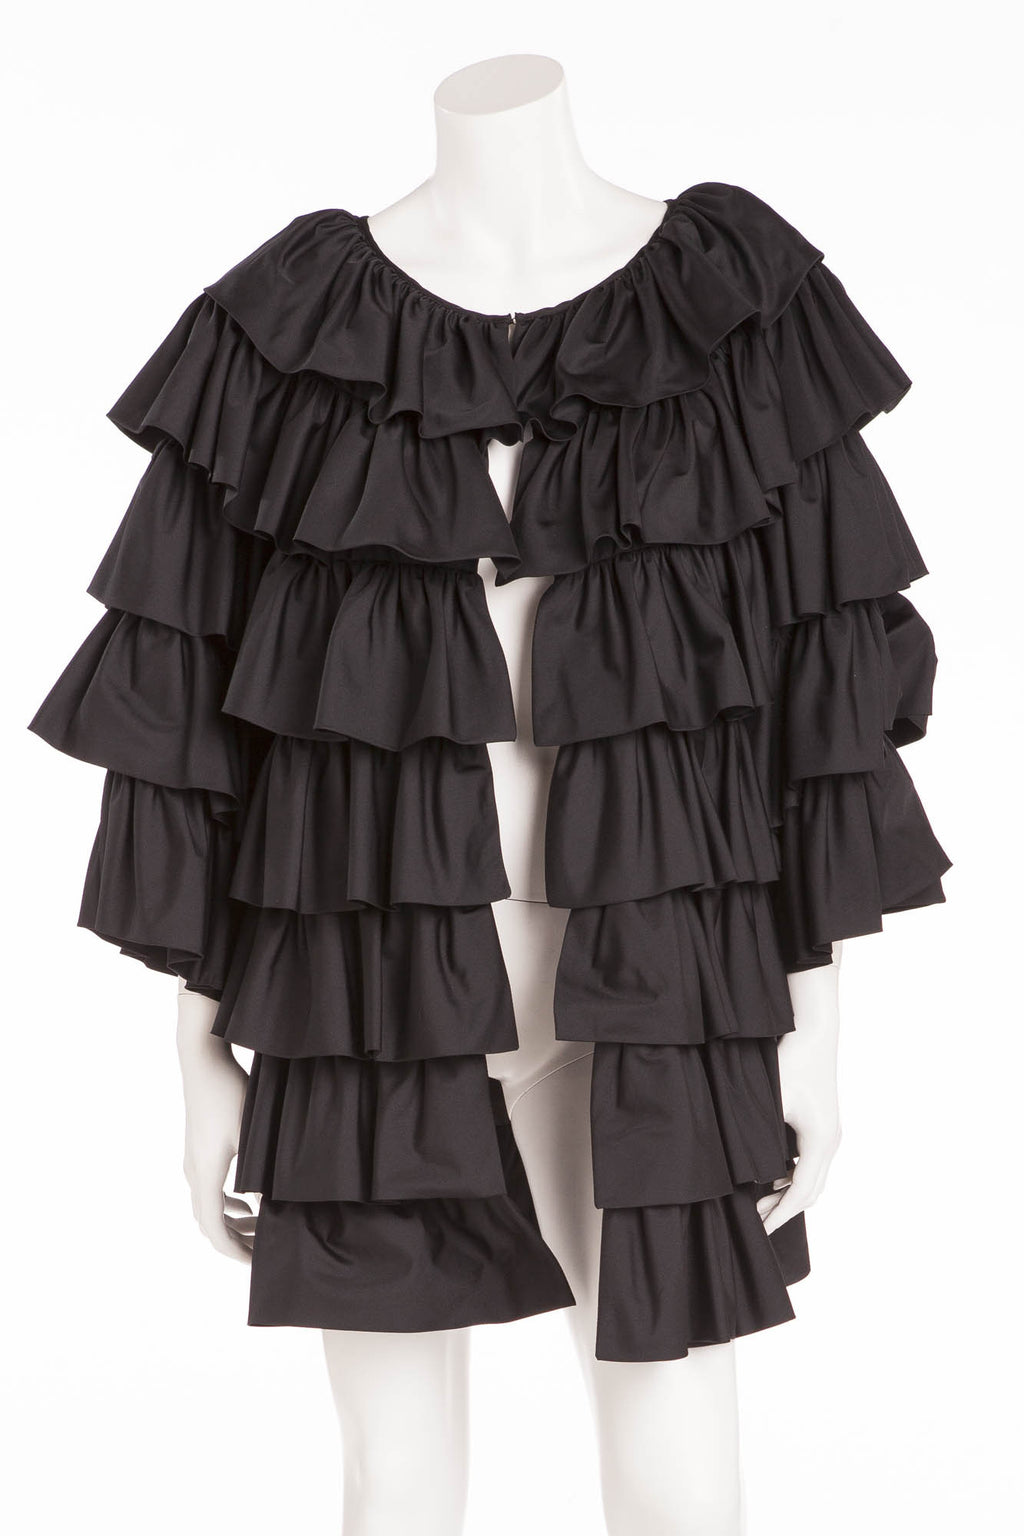 Michael Kors - Black Ruffle Jacket - M